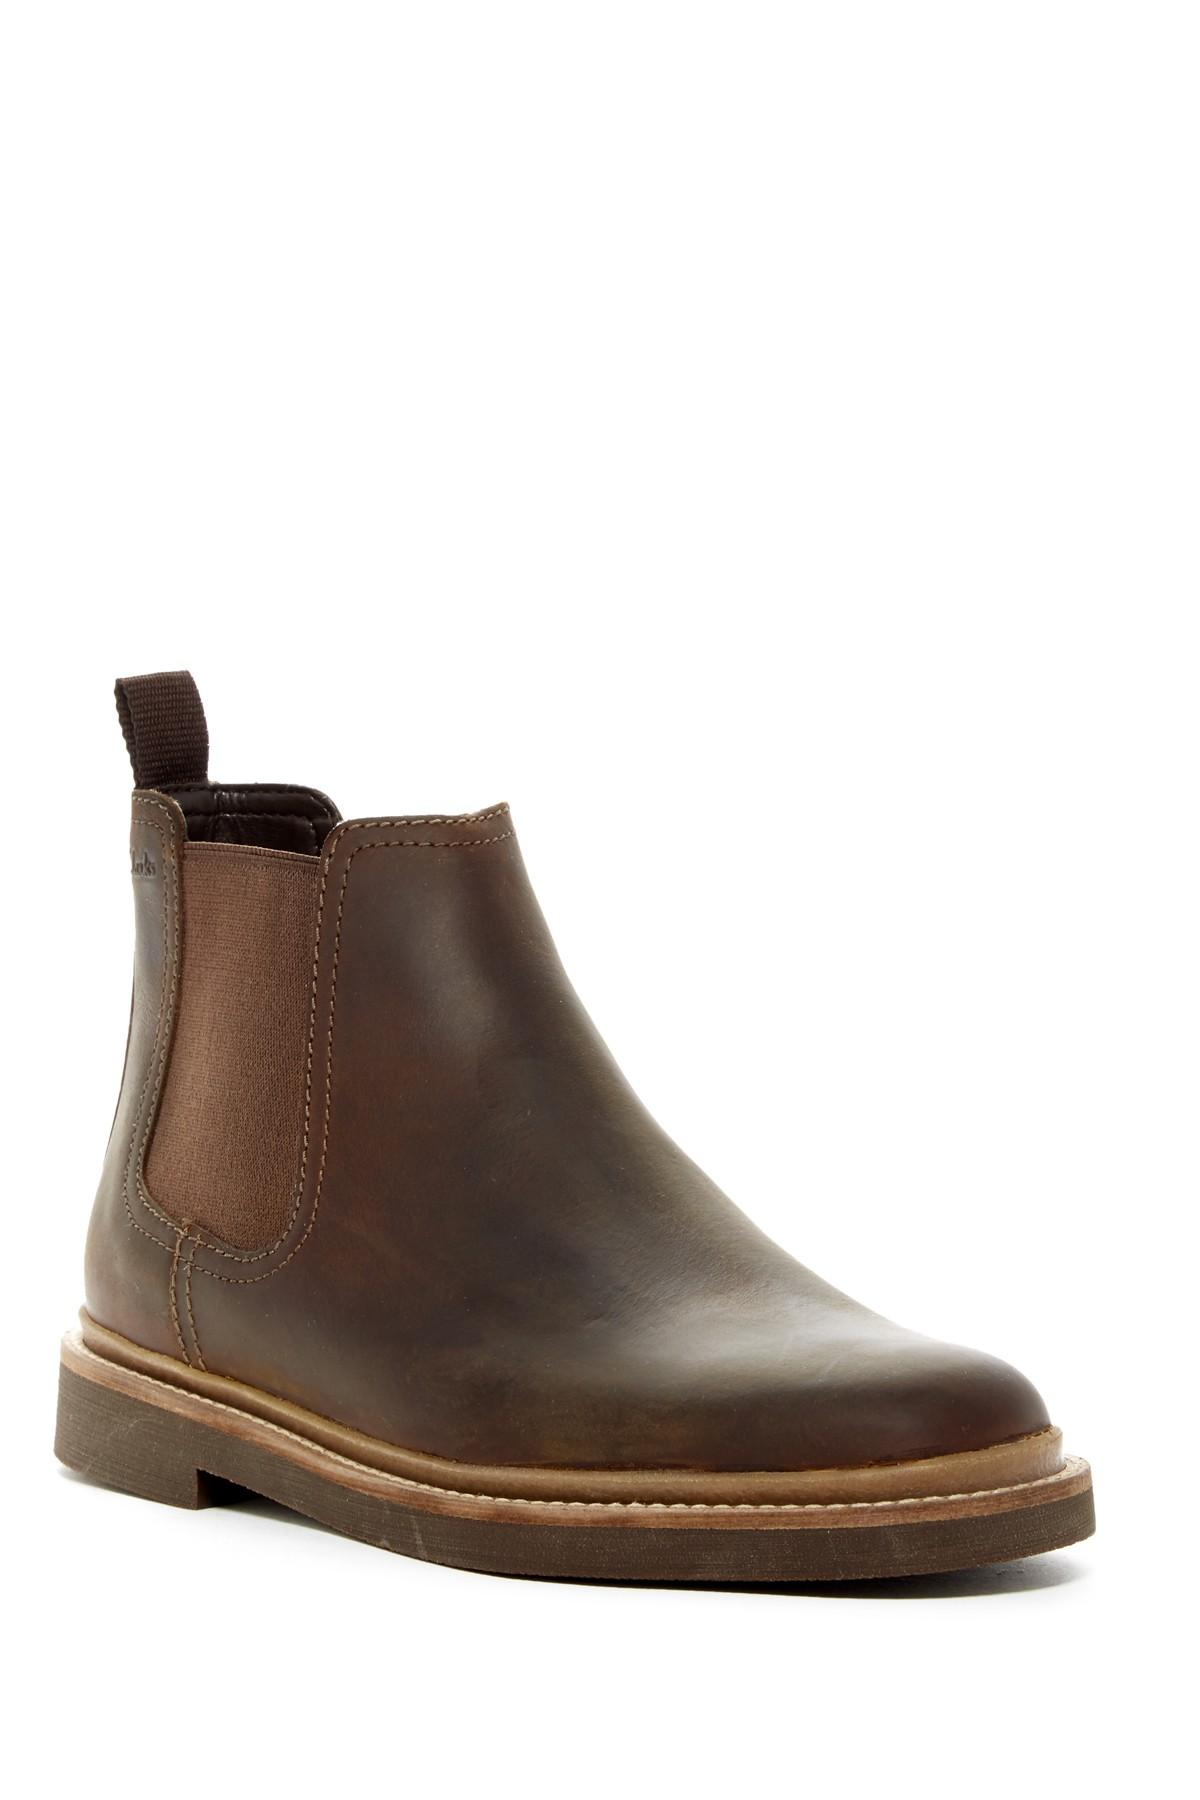 Lyst Clarks Bushacre Up Chelsea Boot In Brown For Men